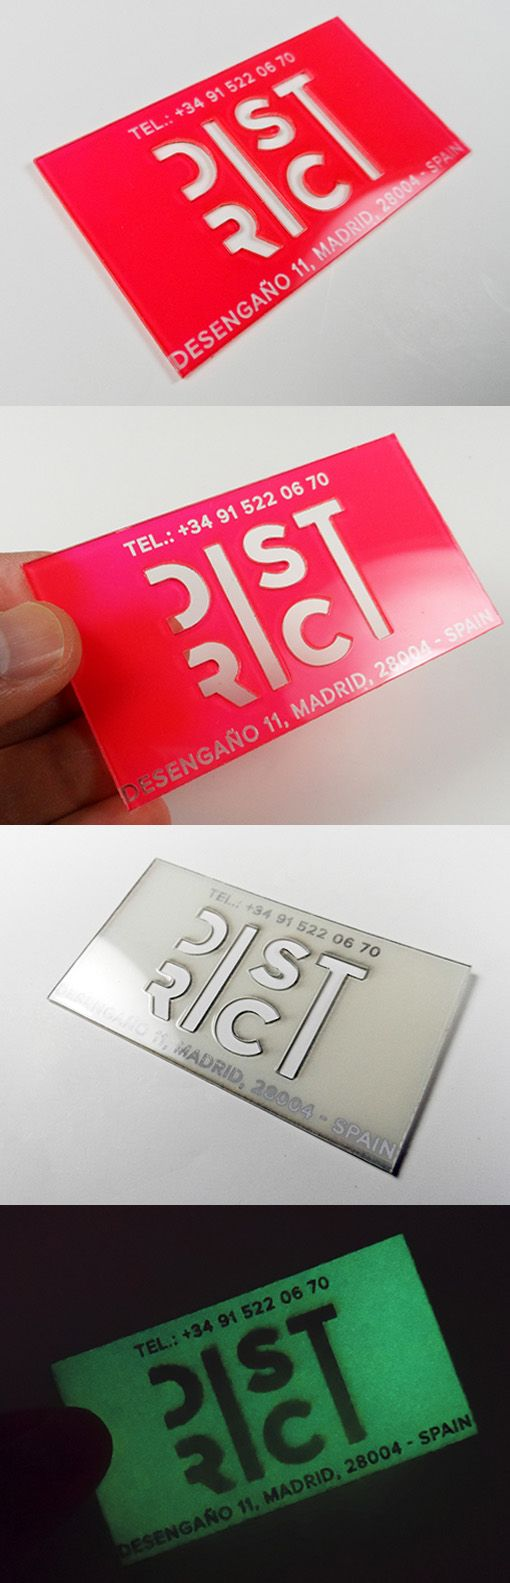 amazing glow in the dark laser cut plastic business card design - Graphic Design Business Ideas